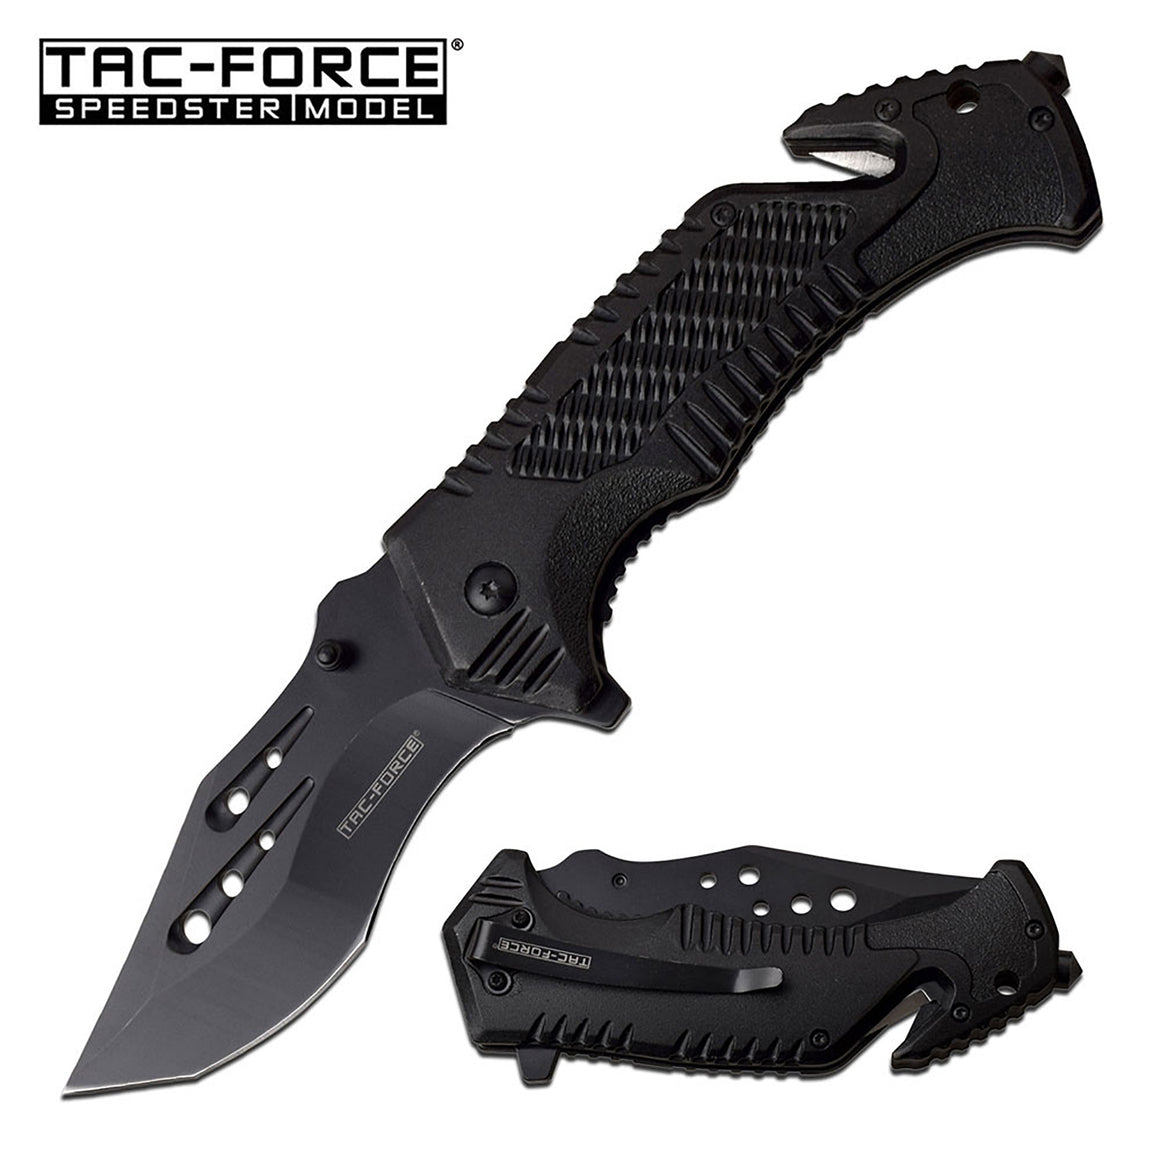 Tac-Force TF-954BK Spring Assisted Knife